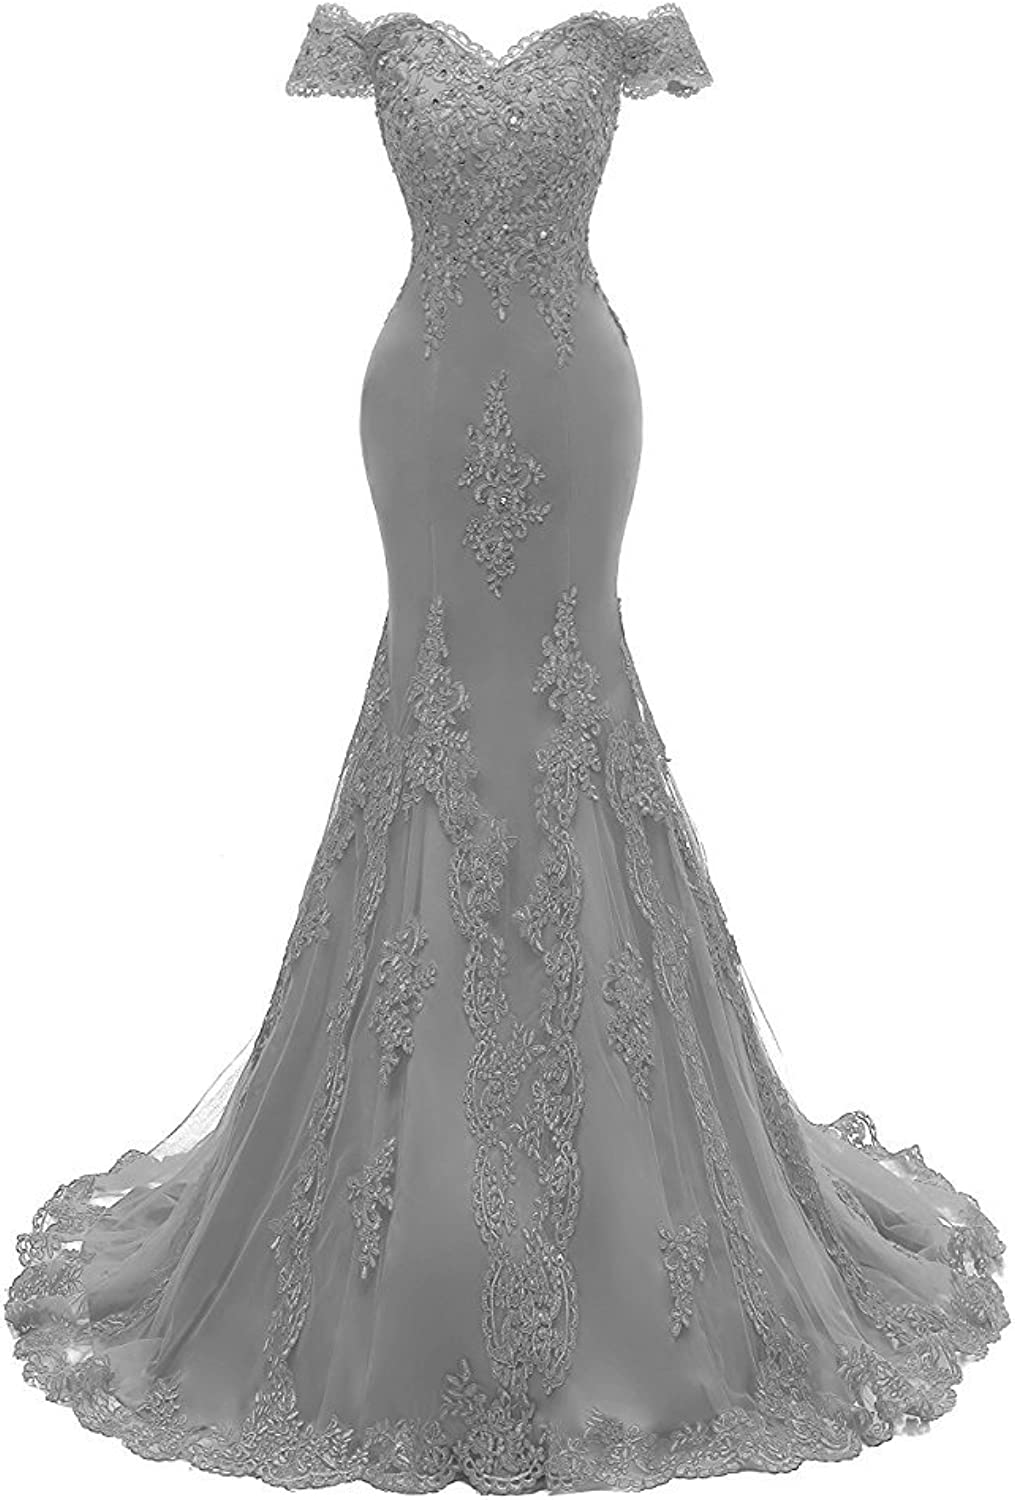 GURNALL Mermaid VNeck Evening Party Dress Beaded Lace Appliques Long Prom Gown